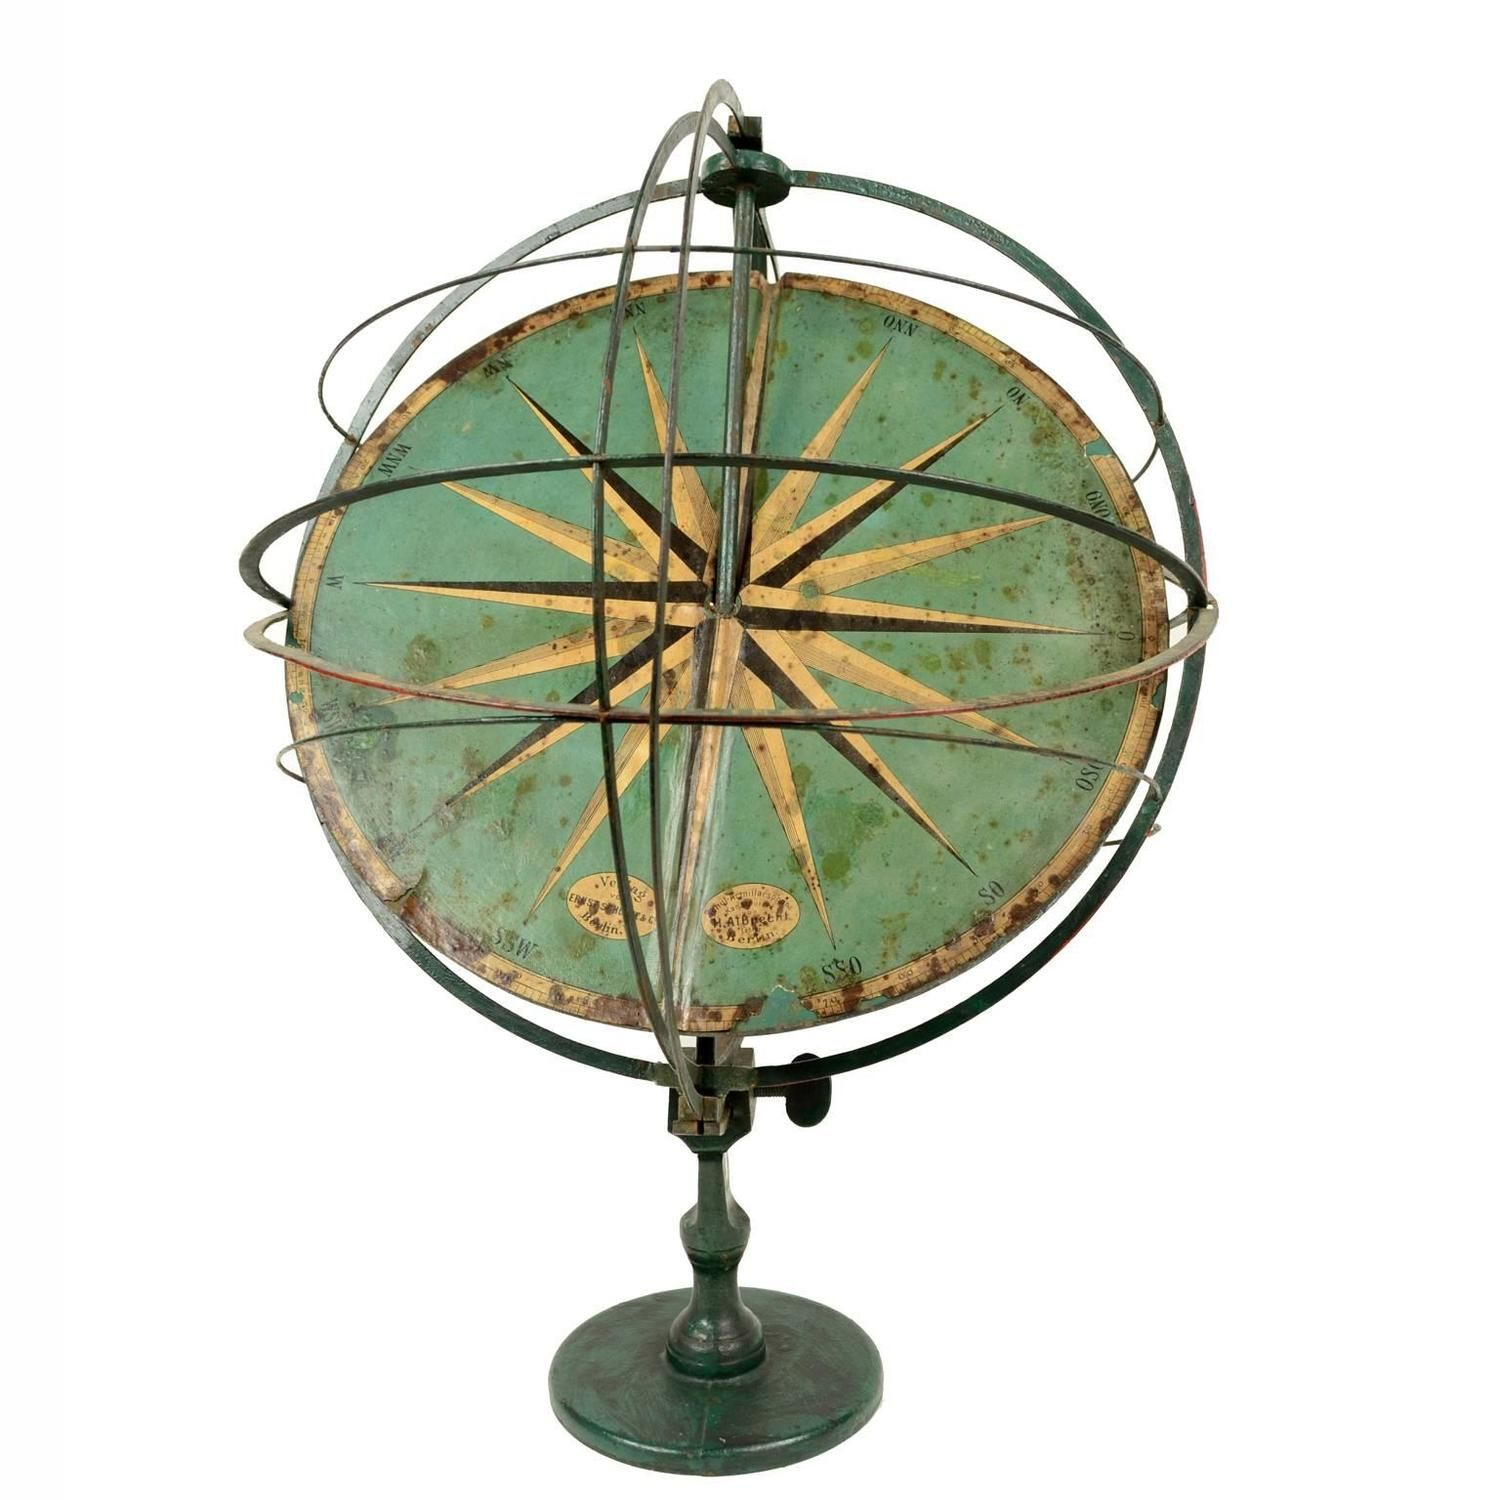 Armillary Sphere by Ernst Schotte & Co. Berlin 1800